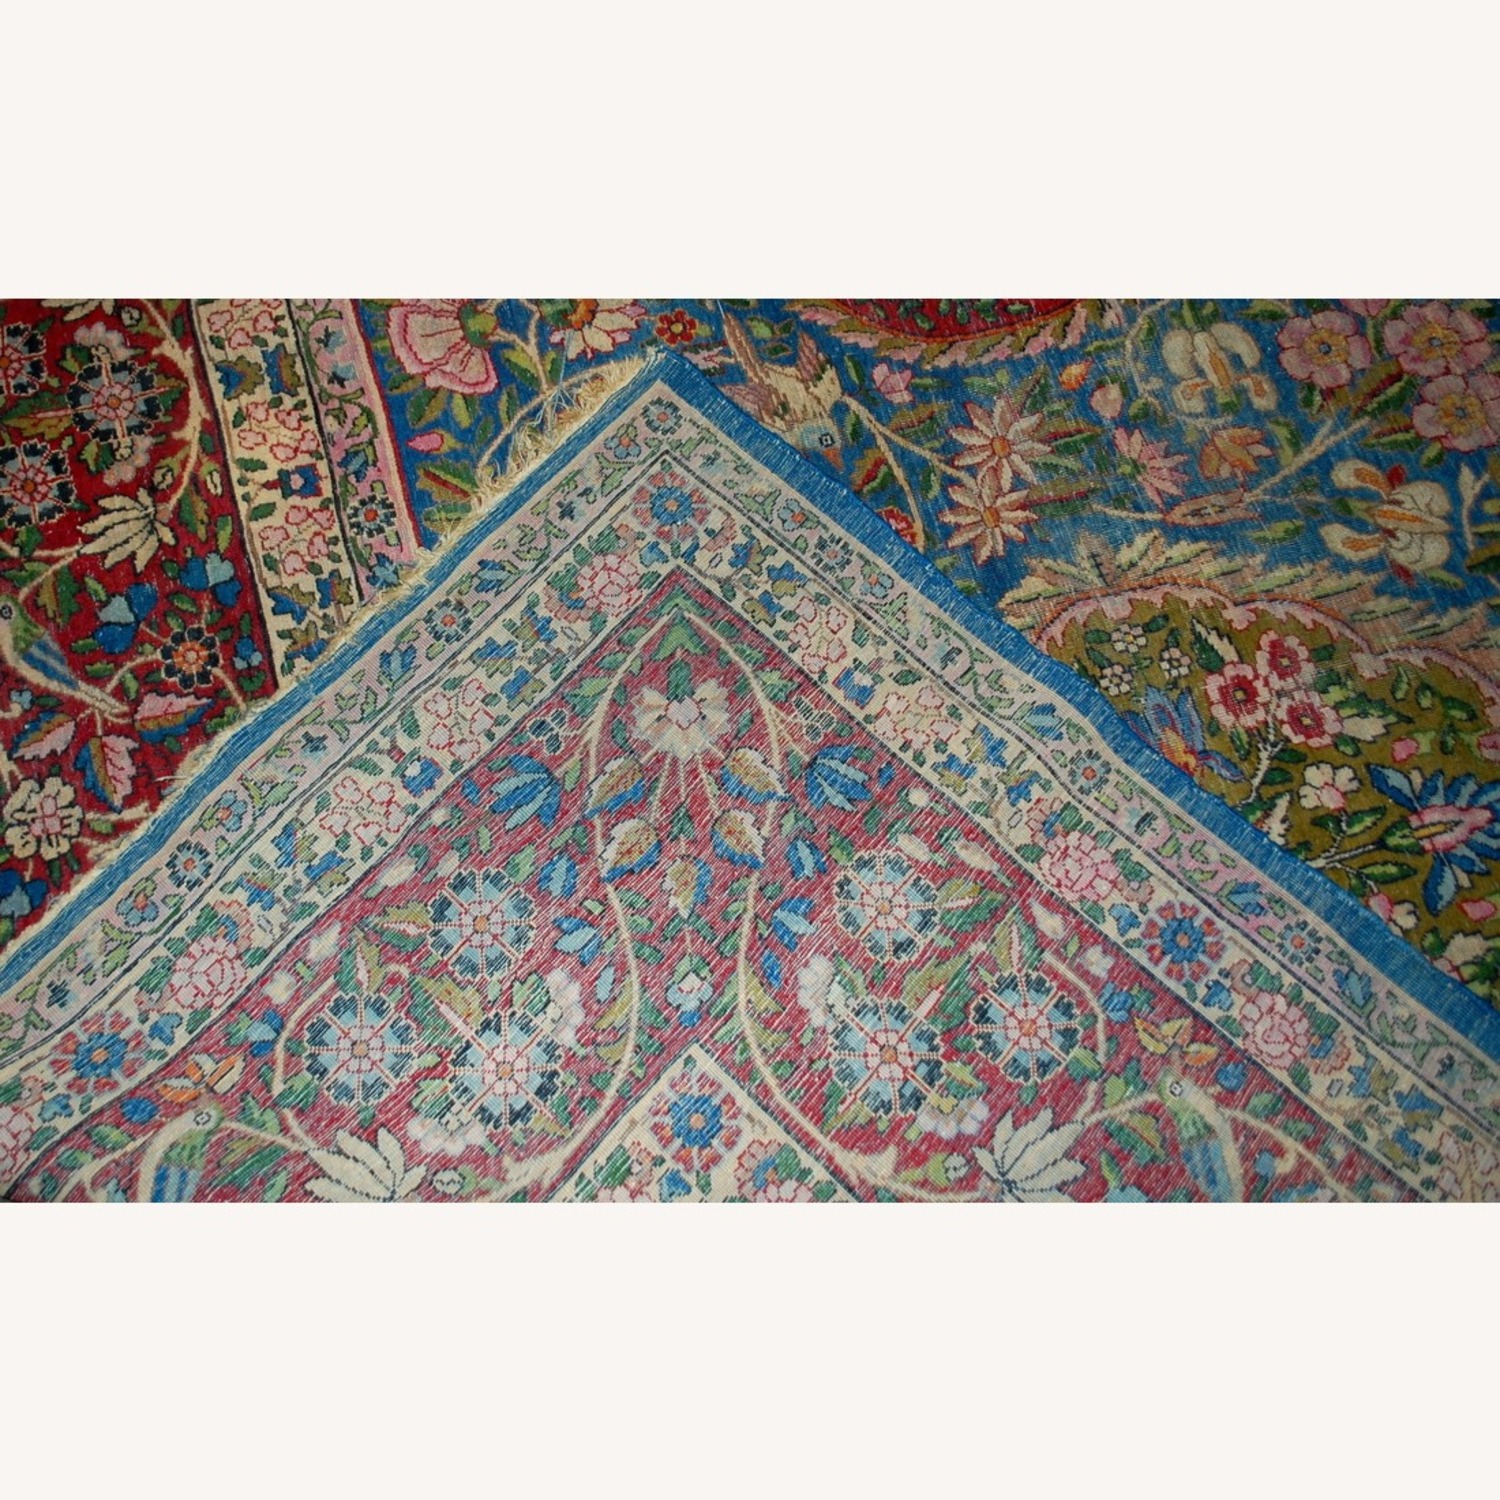 Hand made Antique Persian Yazd Rug - image-2